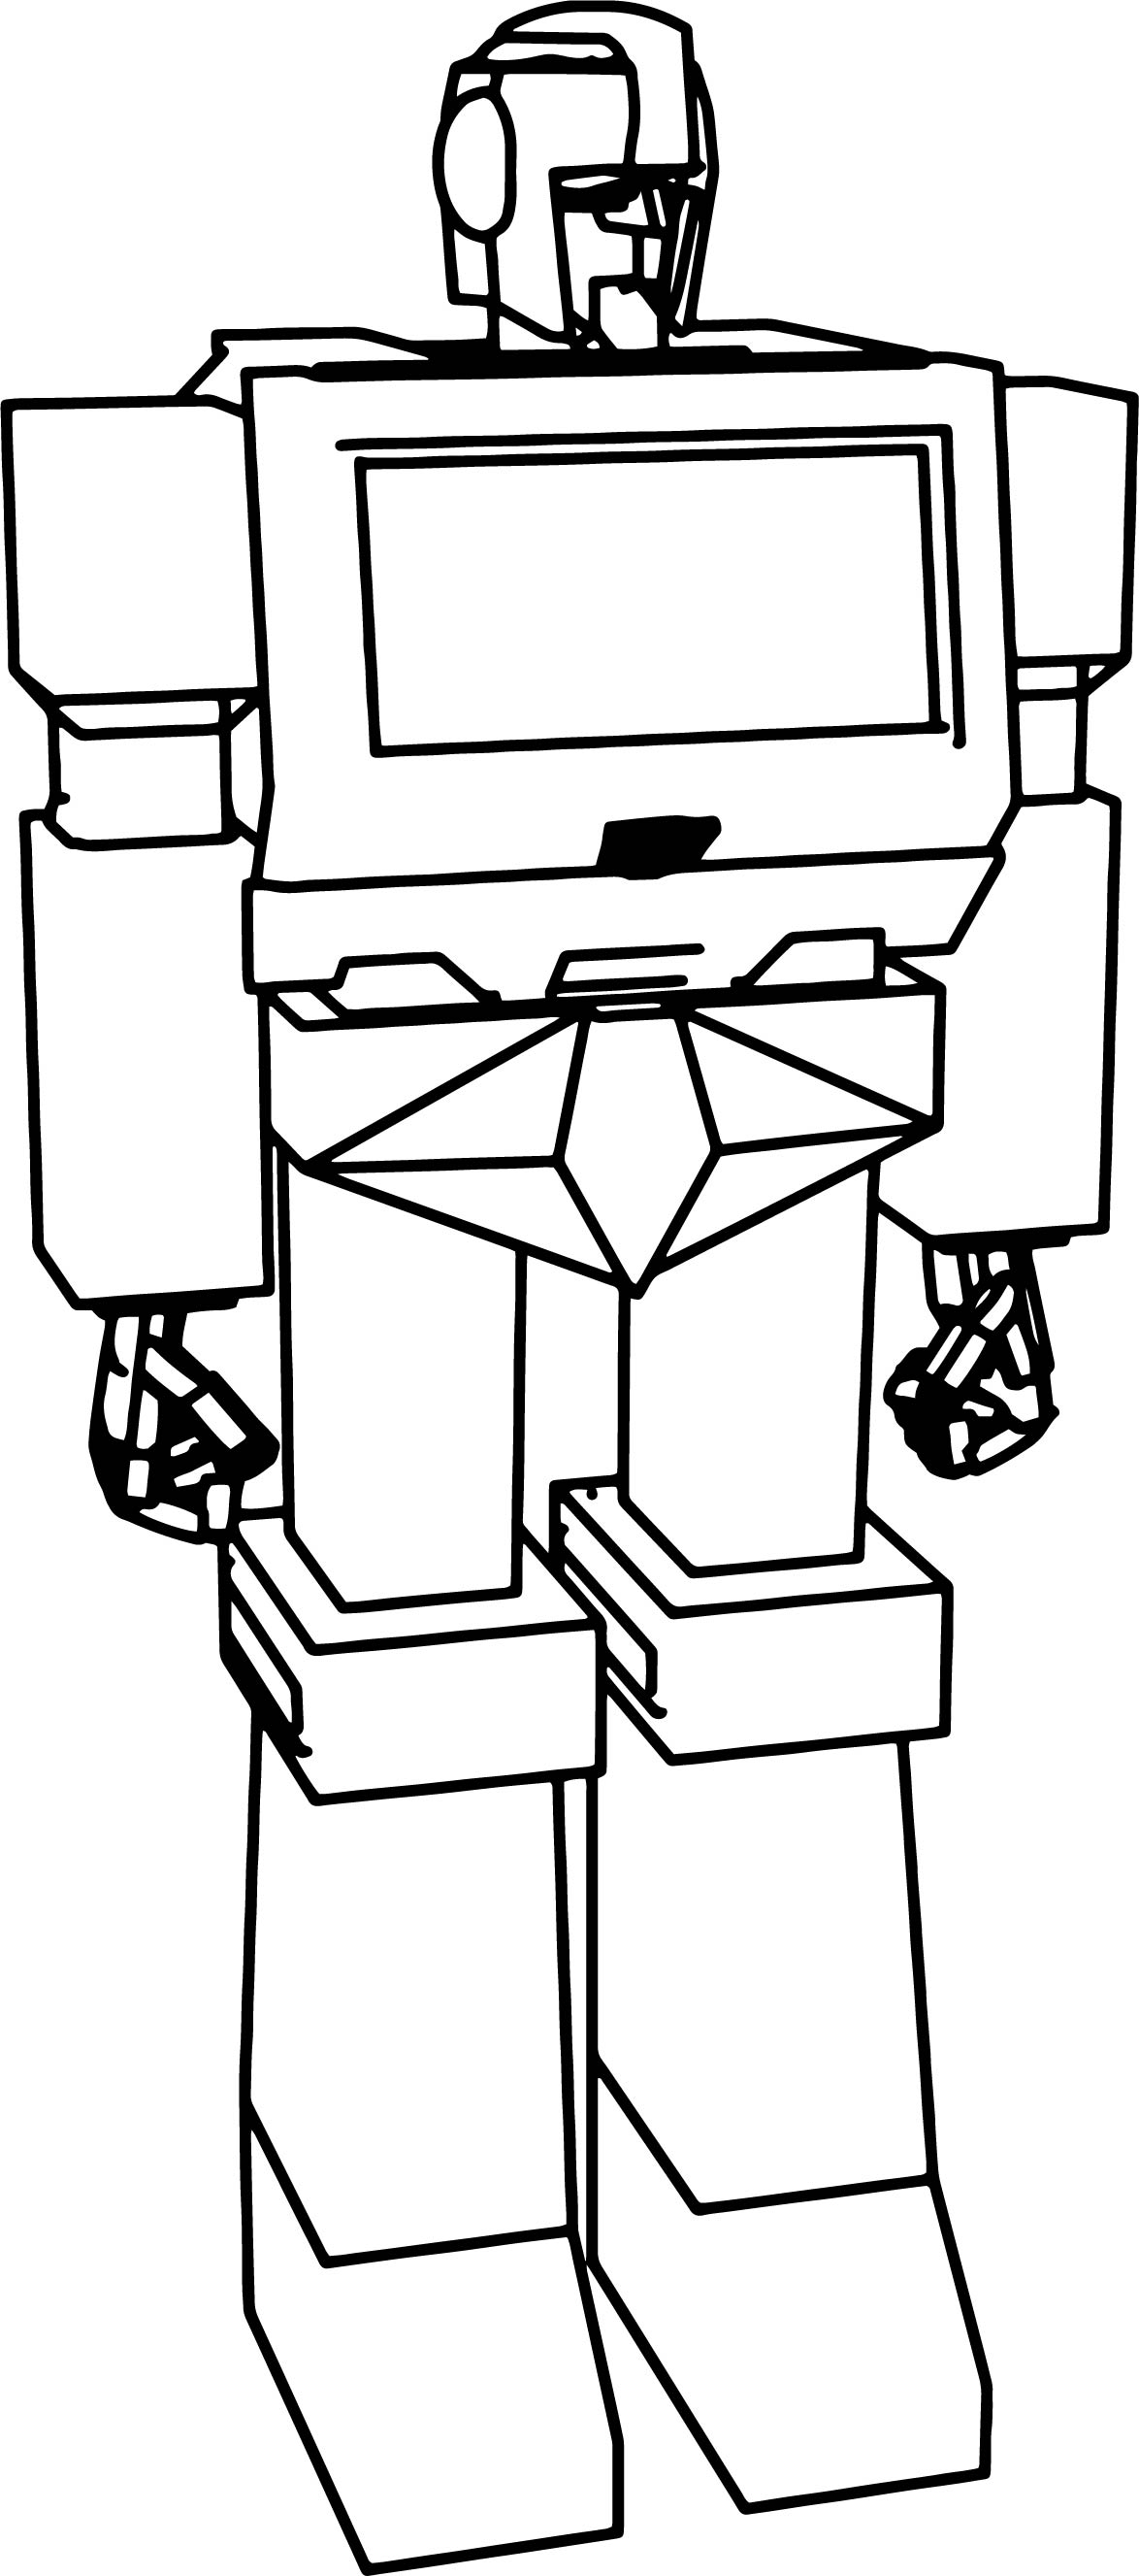 Iron Hide G1 Autobot Coloring Page